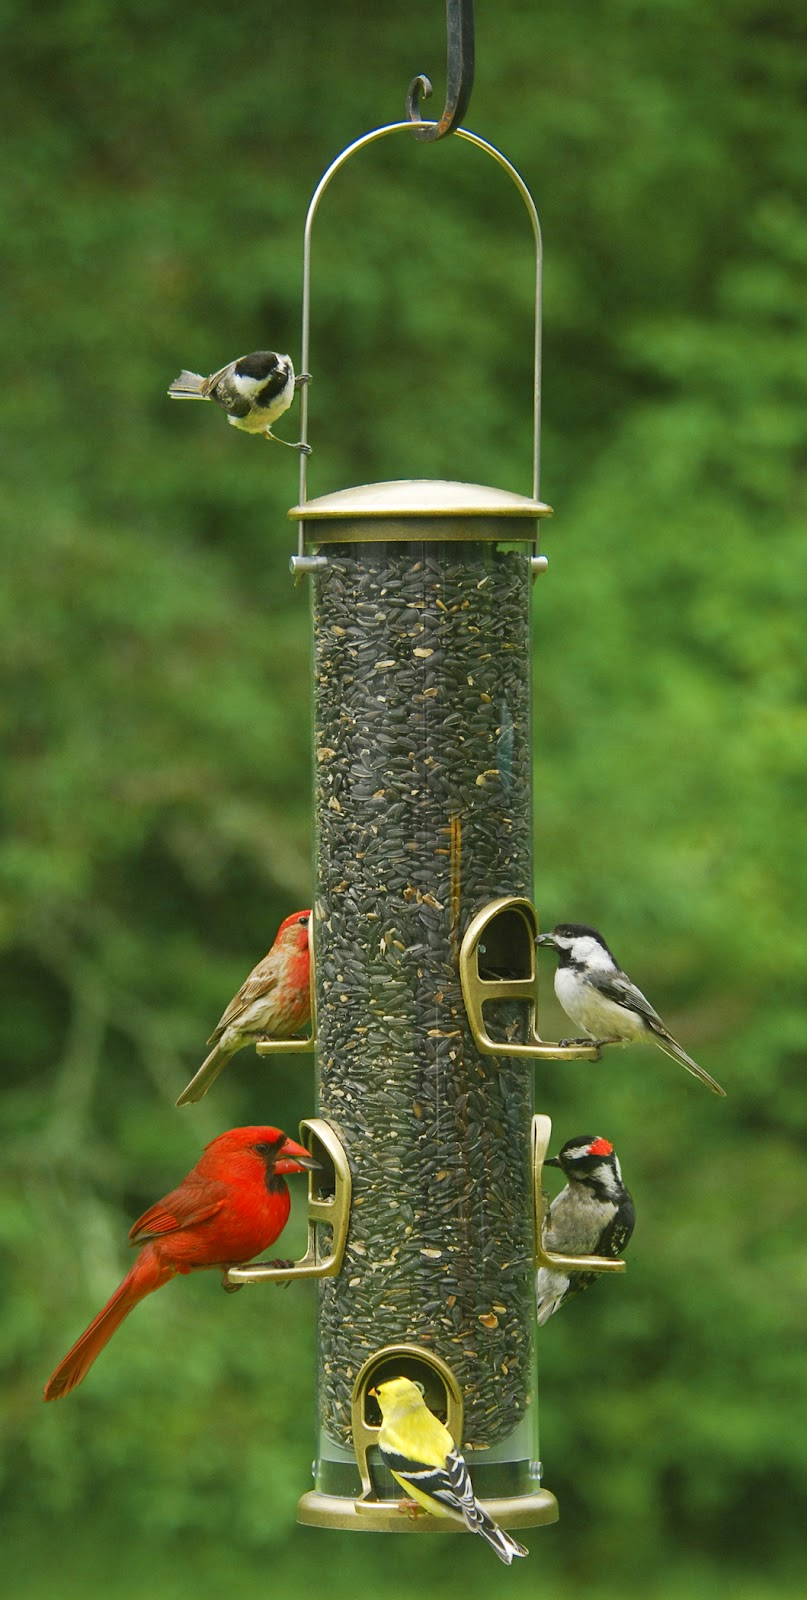 Mix Seed Tube Feeder (Finches, Woodpeckers, Nuthatches, Blue Jays, Chickadees, most all seed eating birds)